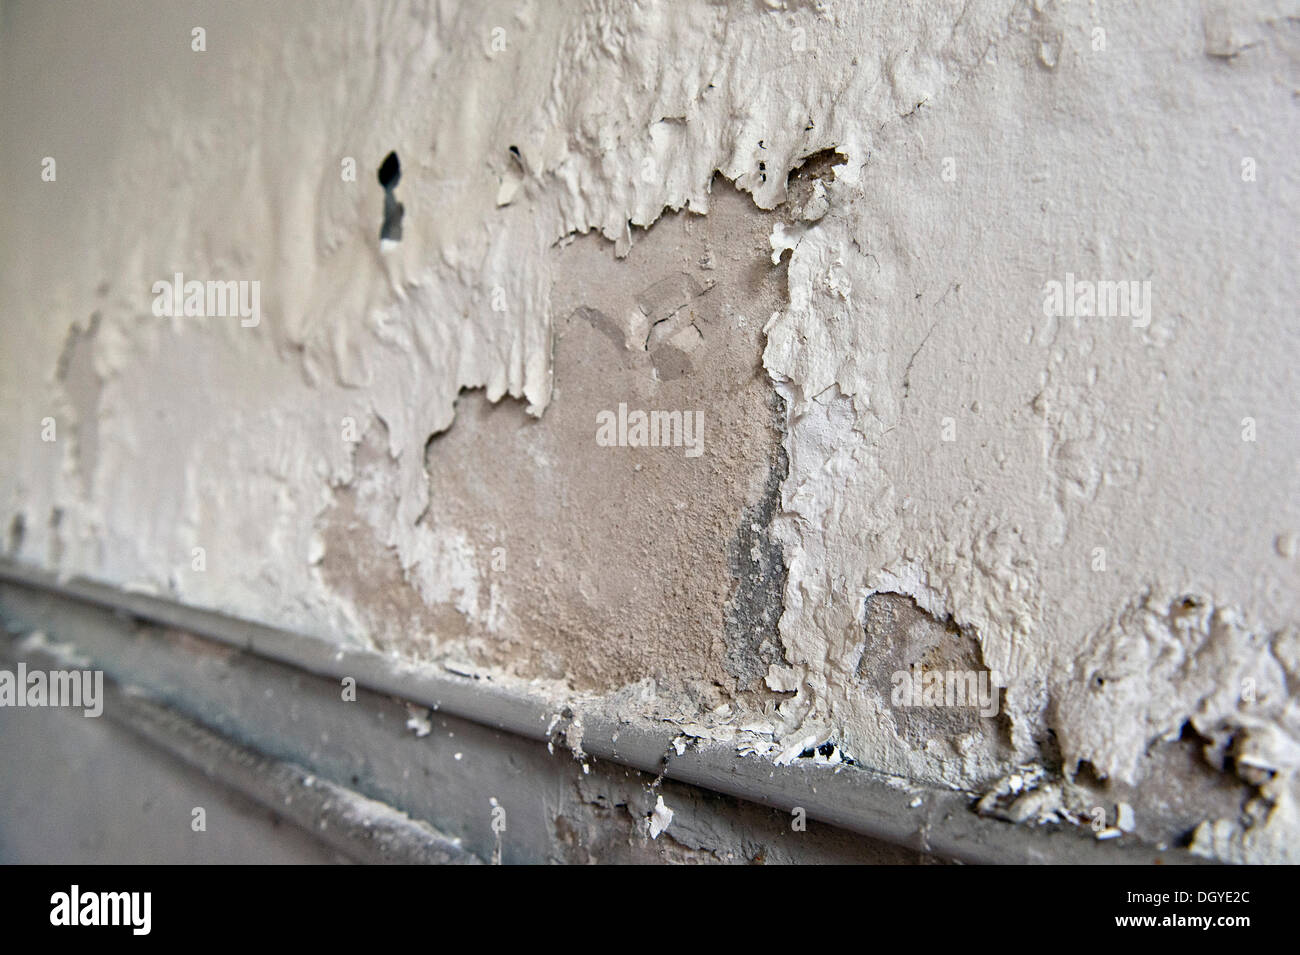 Nitre or saltpeter in masonry from penetrating moisture from the outside, flaking lime, Stuttgart, Baden-Wuerttemberg - Stock Image